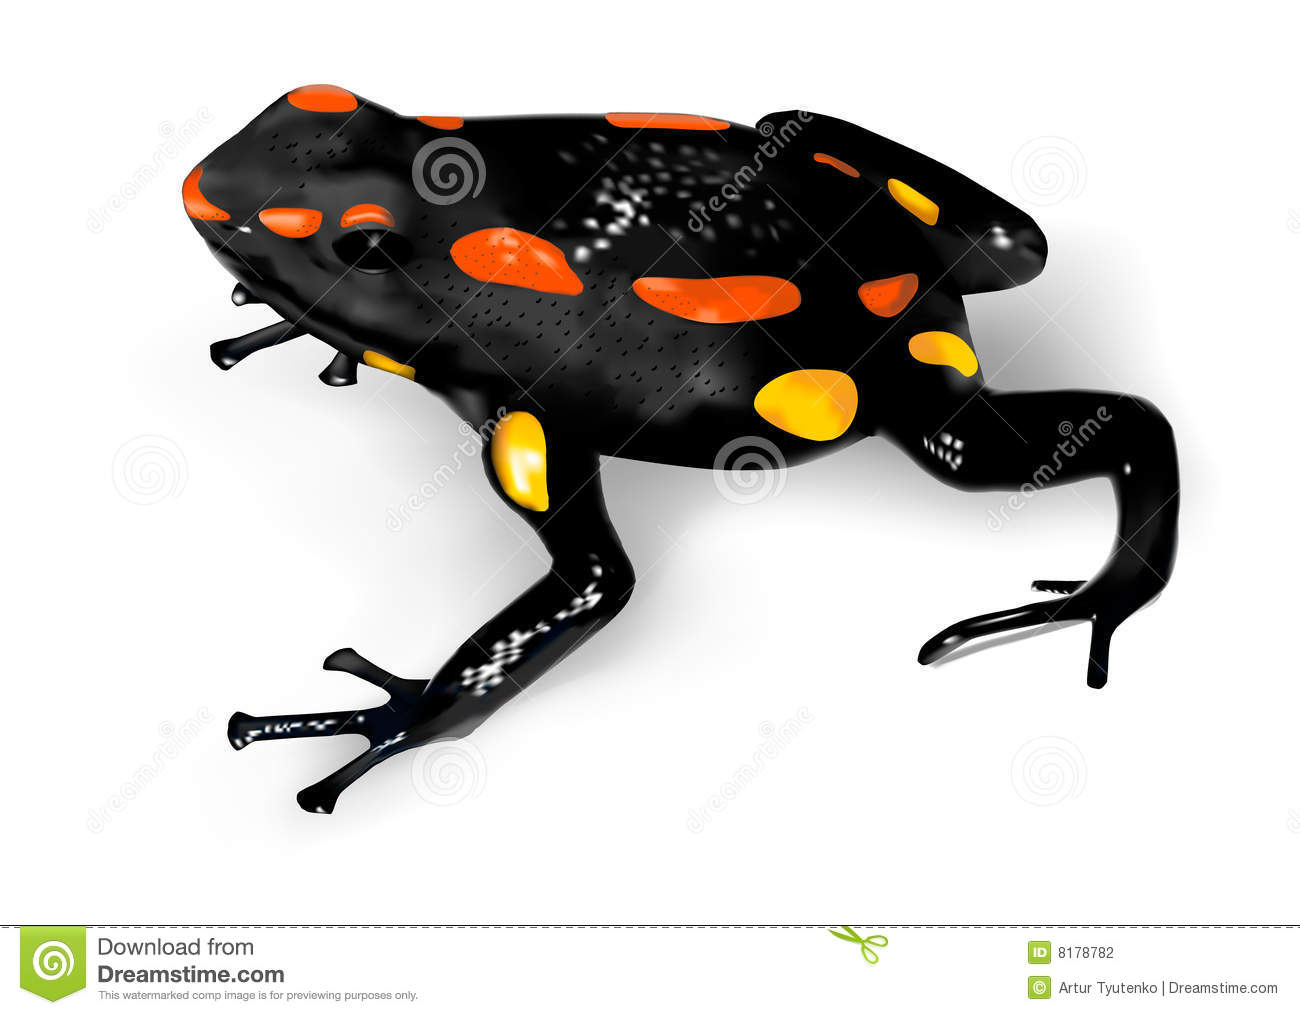 Poison dart frog clip art - photo#8